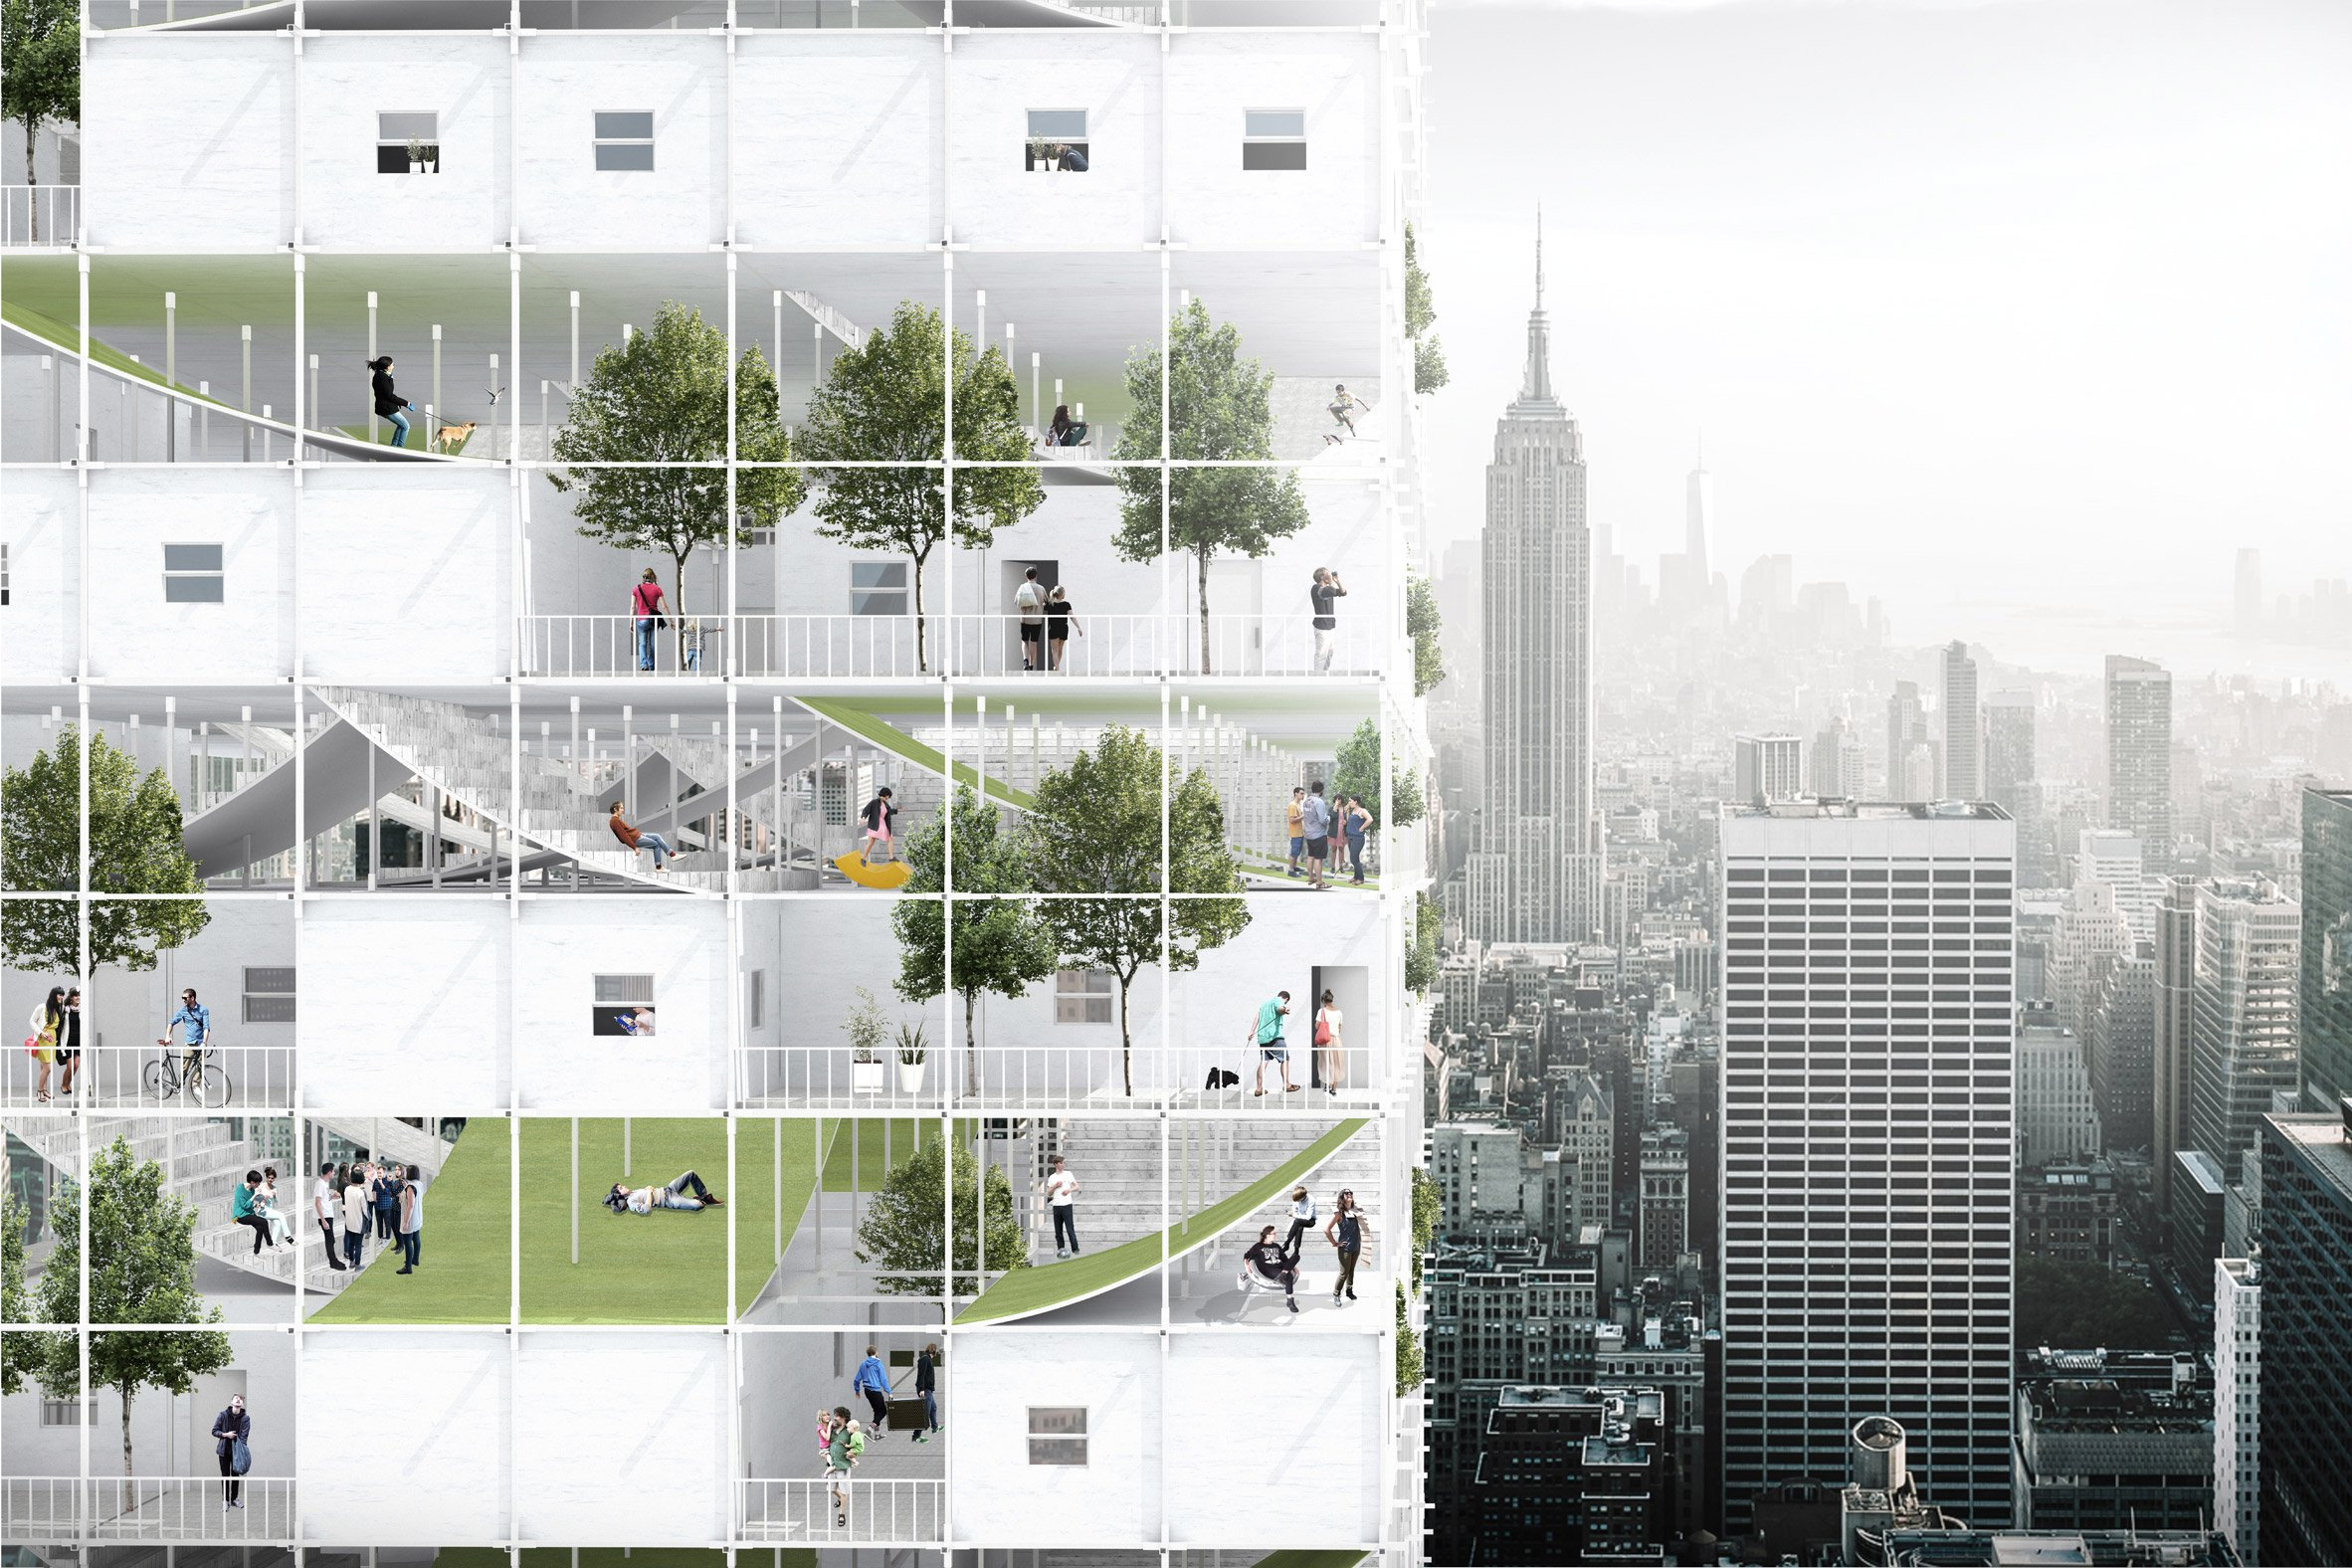 Instant City : Living Air-Right Beomki Lee and Chang Kyu Lee